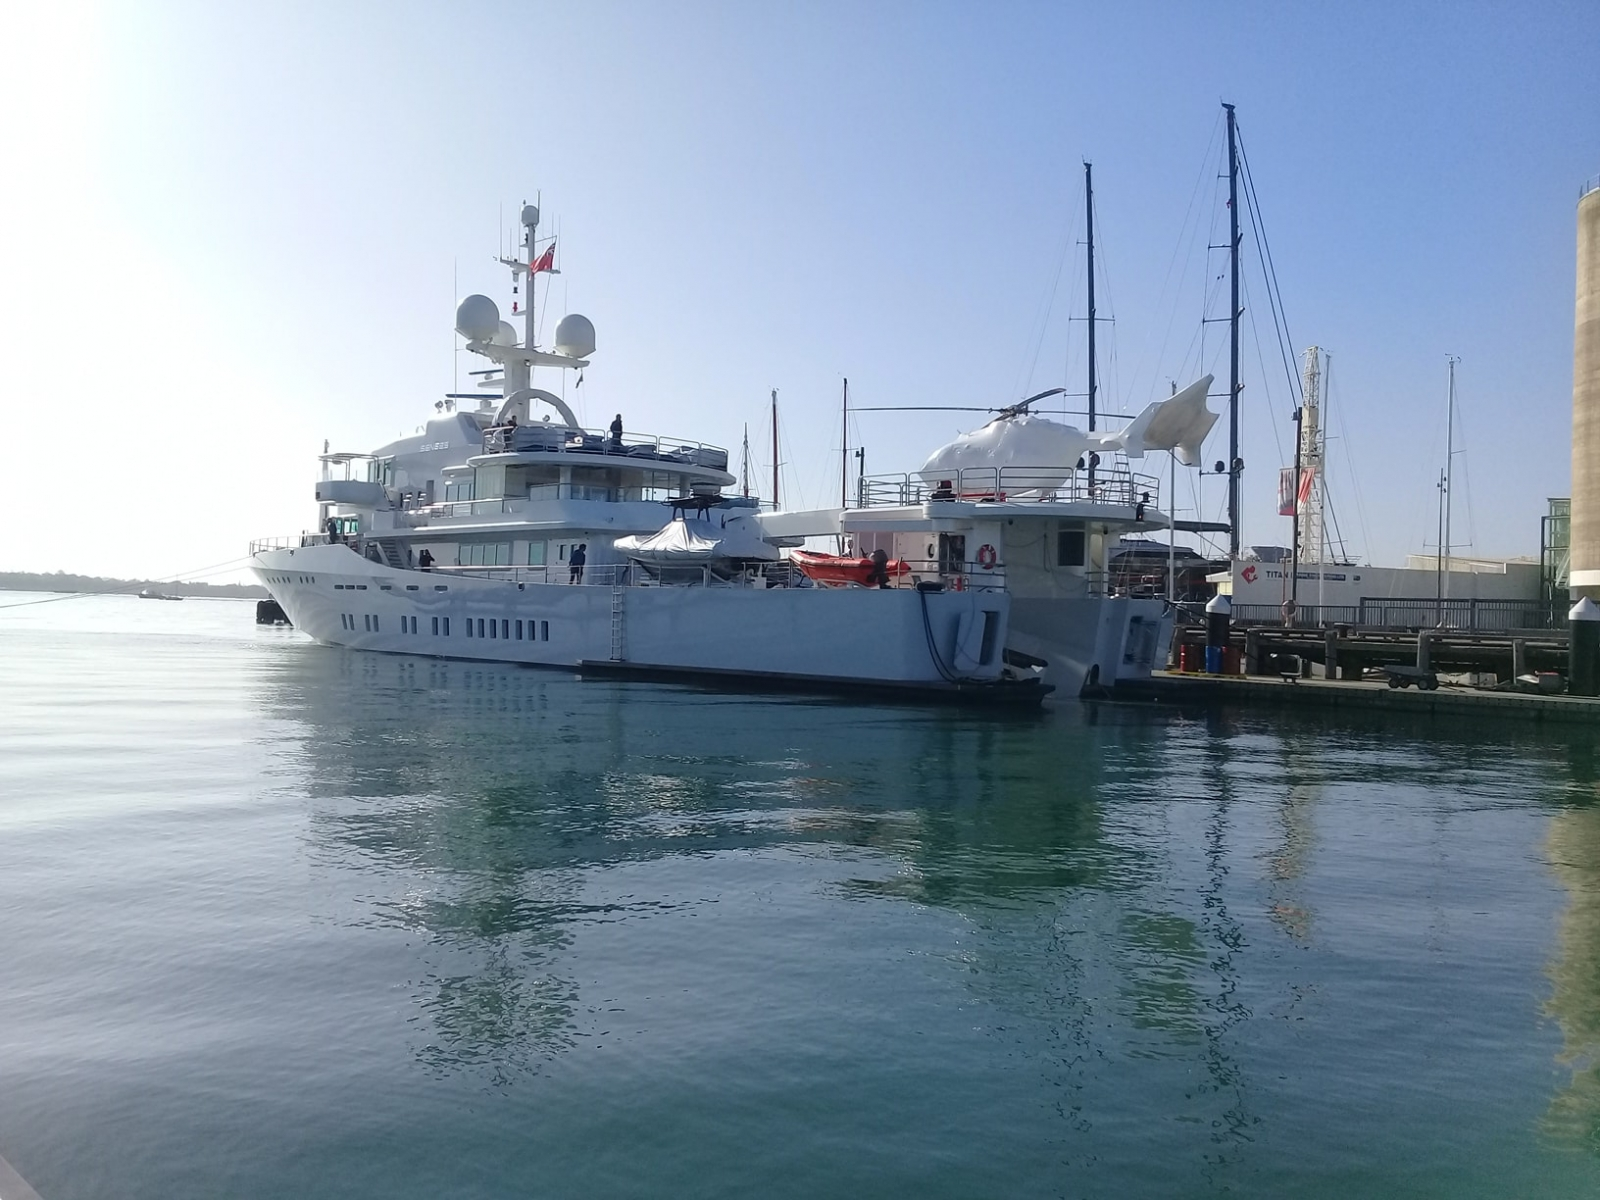 A1-Wrap-Shipping-Gallery-Image-1-Harbour-Heli-Auckland-3-min